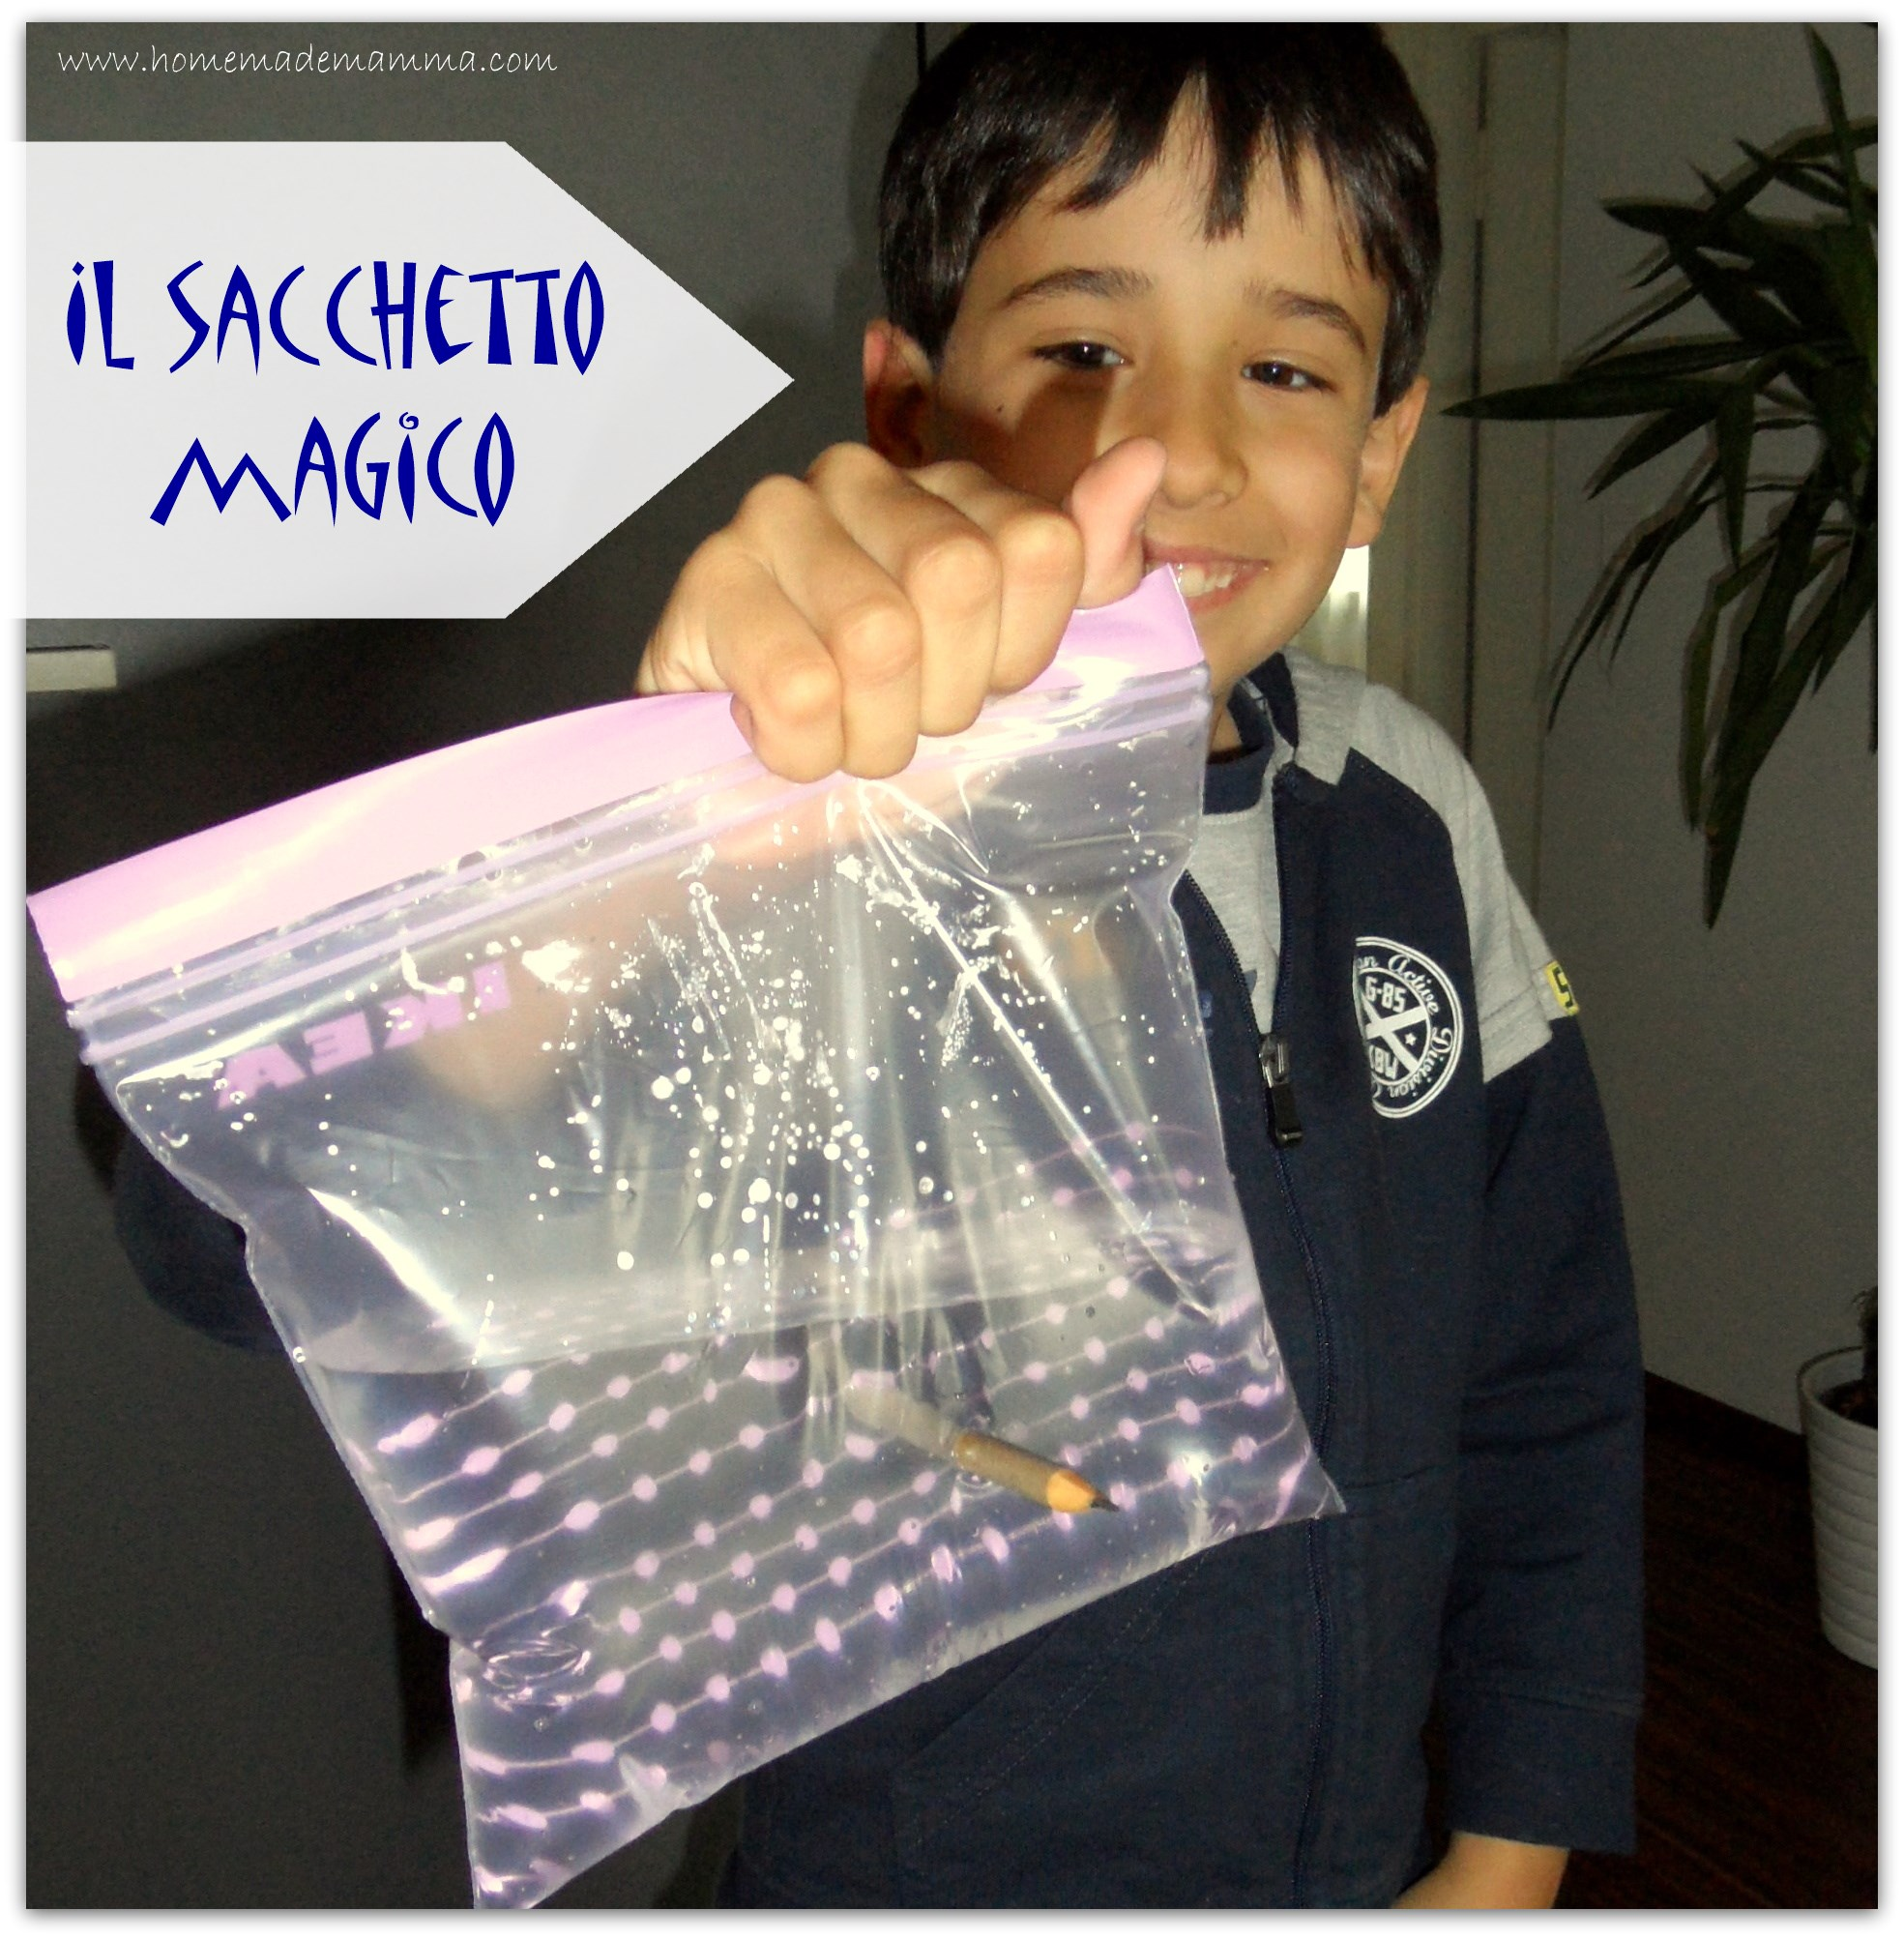 Amato Esperimenti scientifici con i bambini | MM19